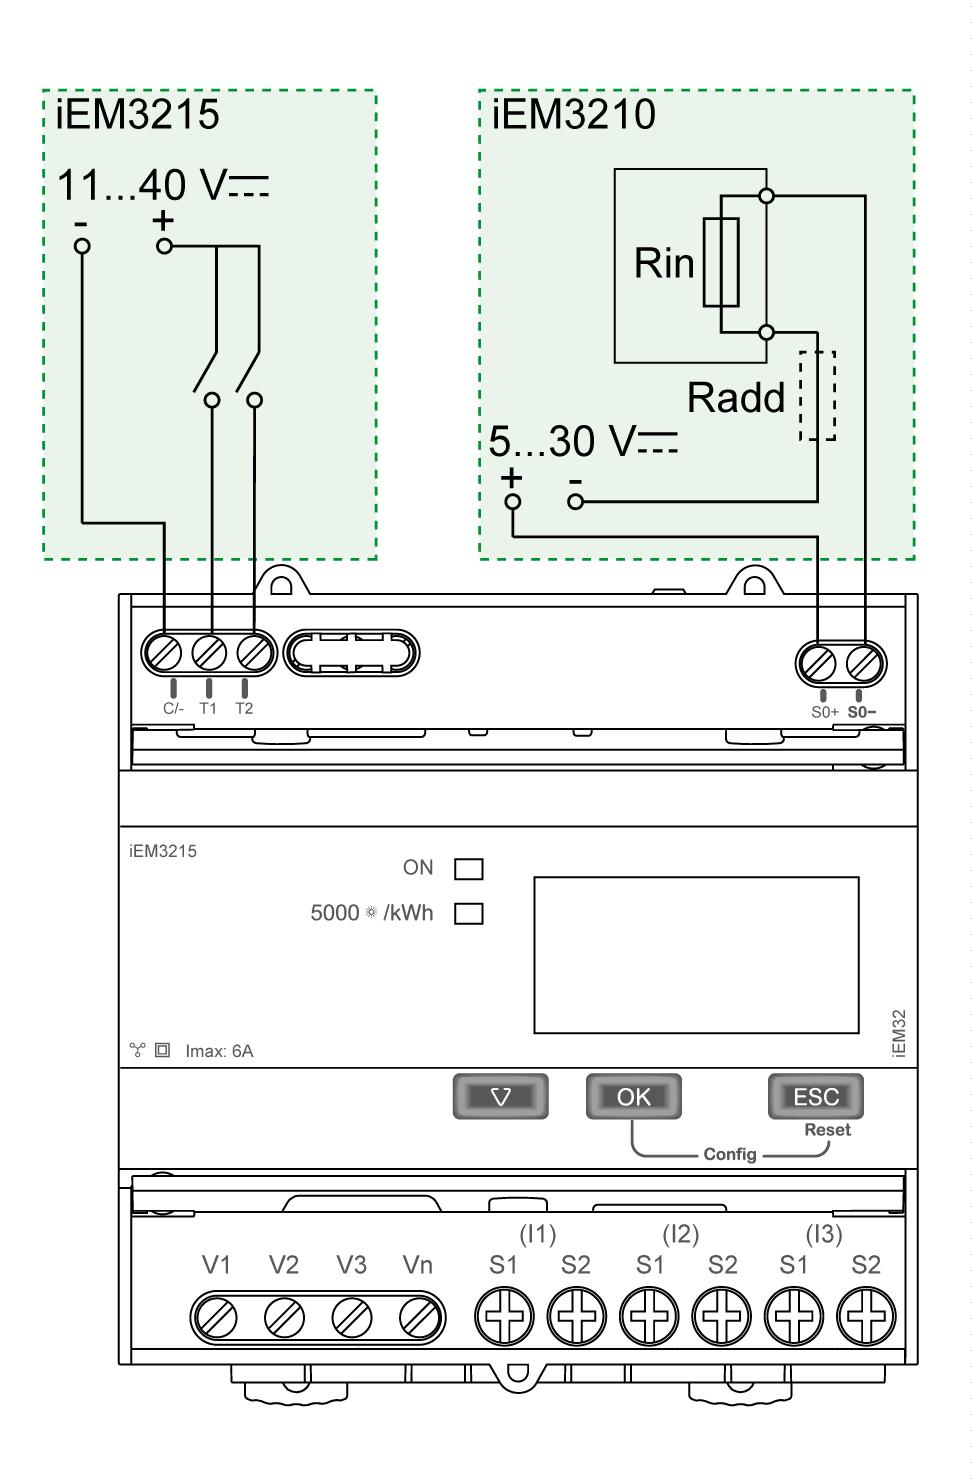 Iem3100 Series Iem3200 Pdf Wiring Modbus Connection Diagram Energy Meter Installation Of Iem3210 Iem3215 Note The Electrical